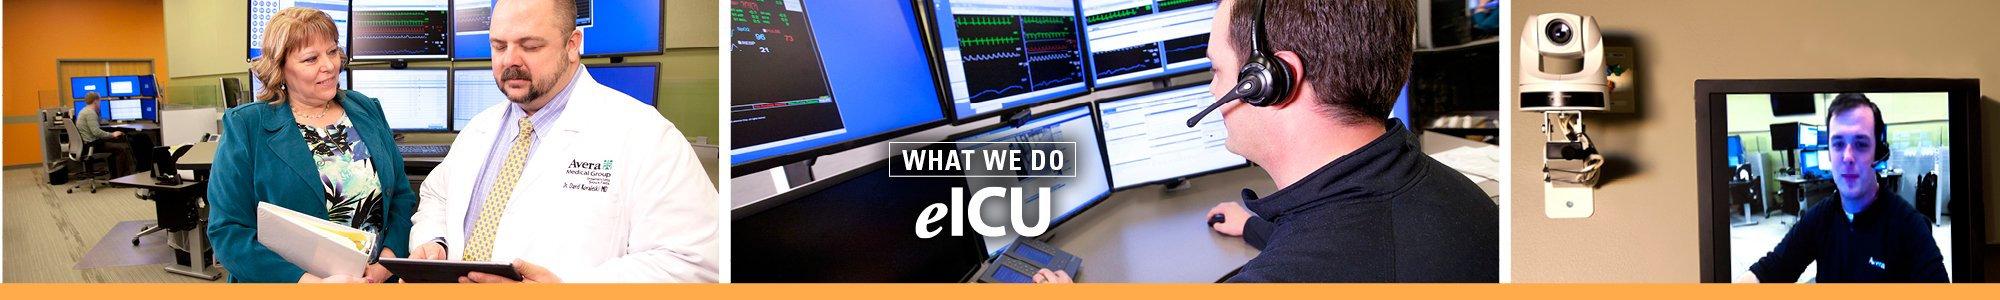 What we do: eICU